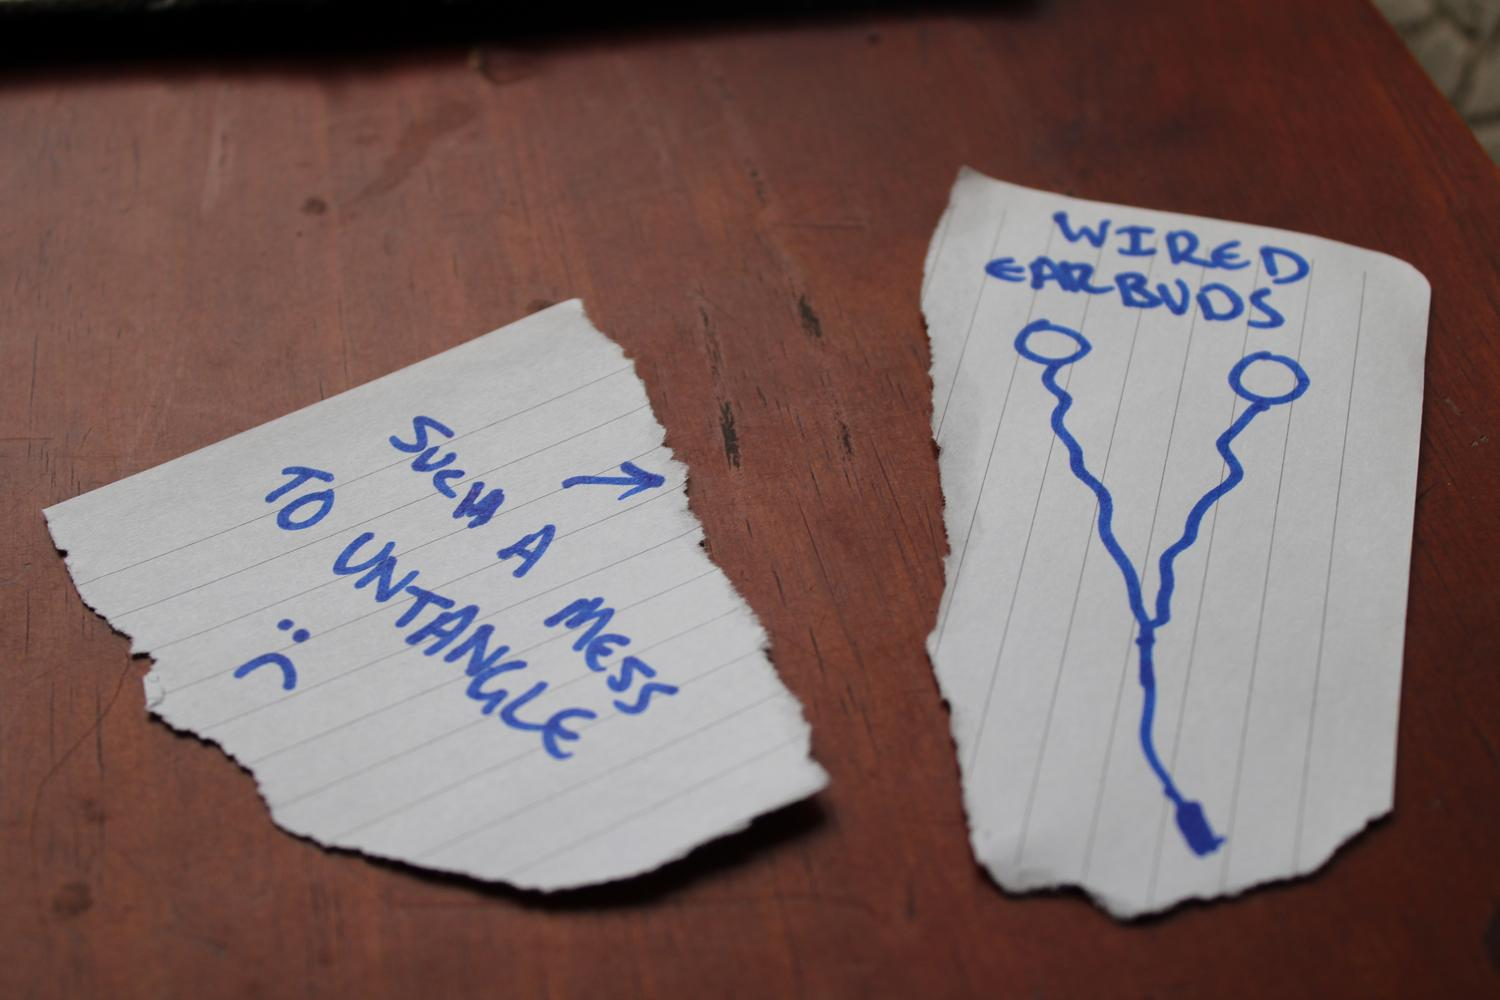 """A close up photo of a table surface with two pieces of paper. One on the left says """"Such a mess to untangle"""" with a sad face and an arrow pointing to the right. The piece of paper on the right is a ridiculously bad drawing of wired earbuds with text at the top that reads """"Wired earbuds"""". I no longer had the them in my position so this is supposed to be a placeholder for the real thing."""